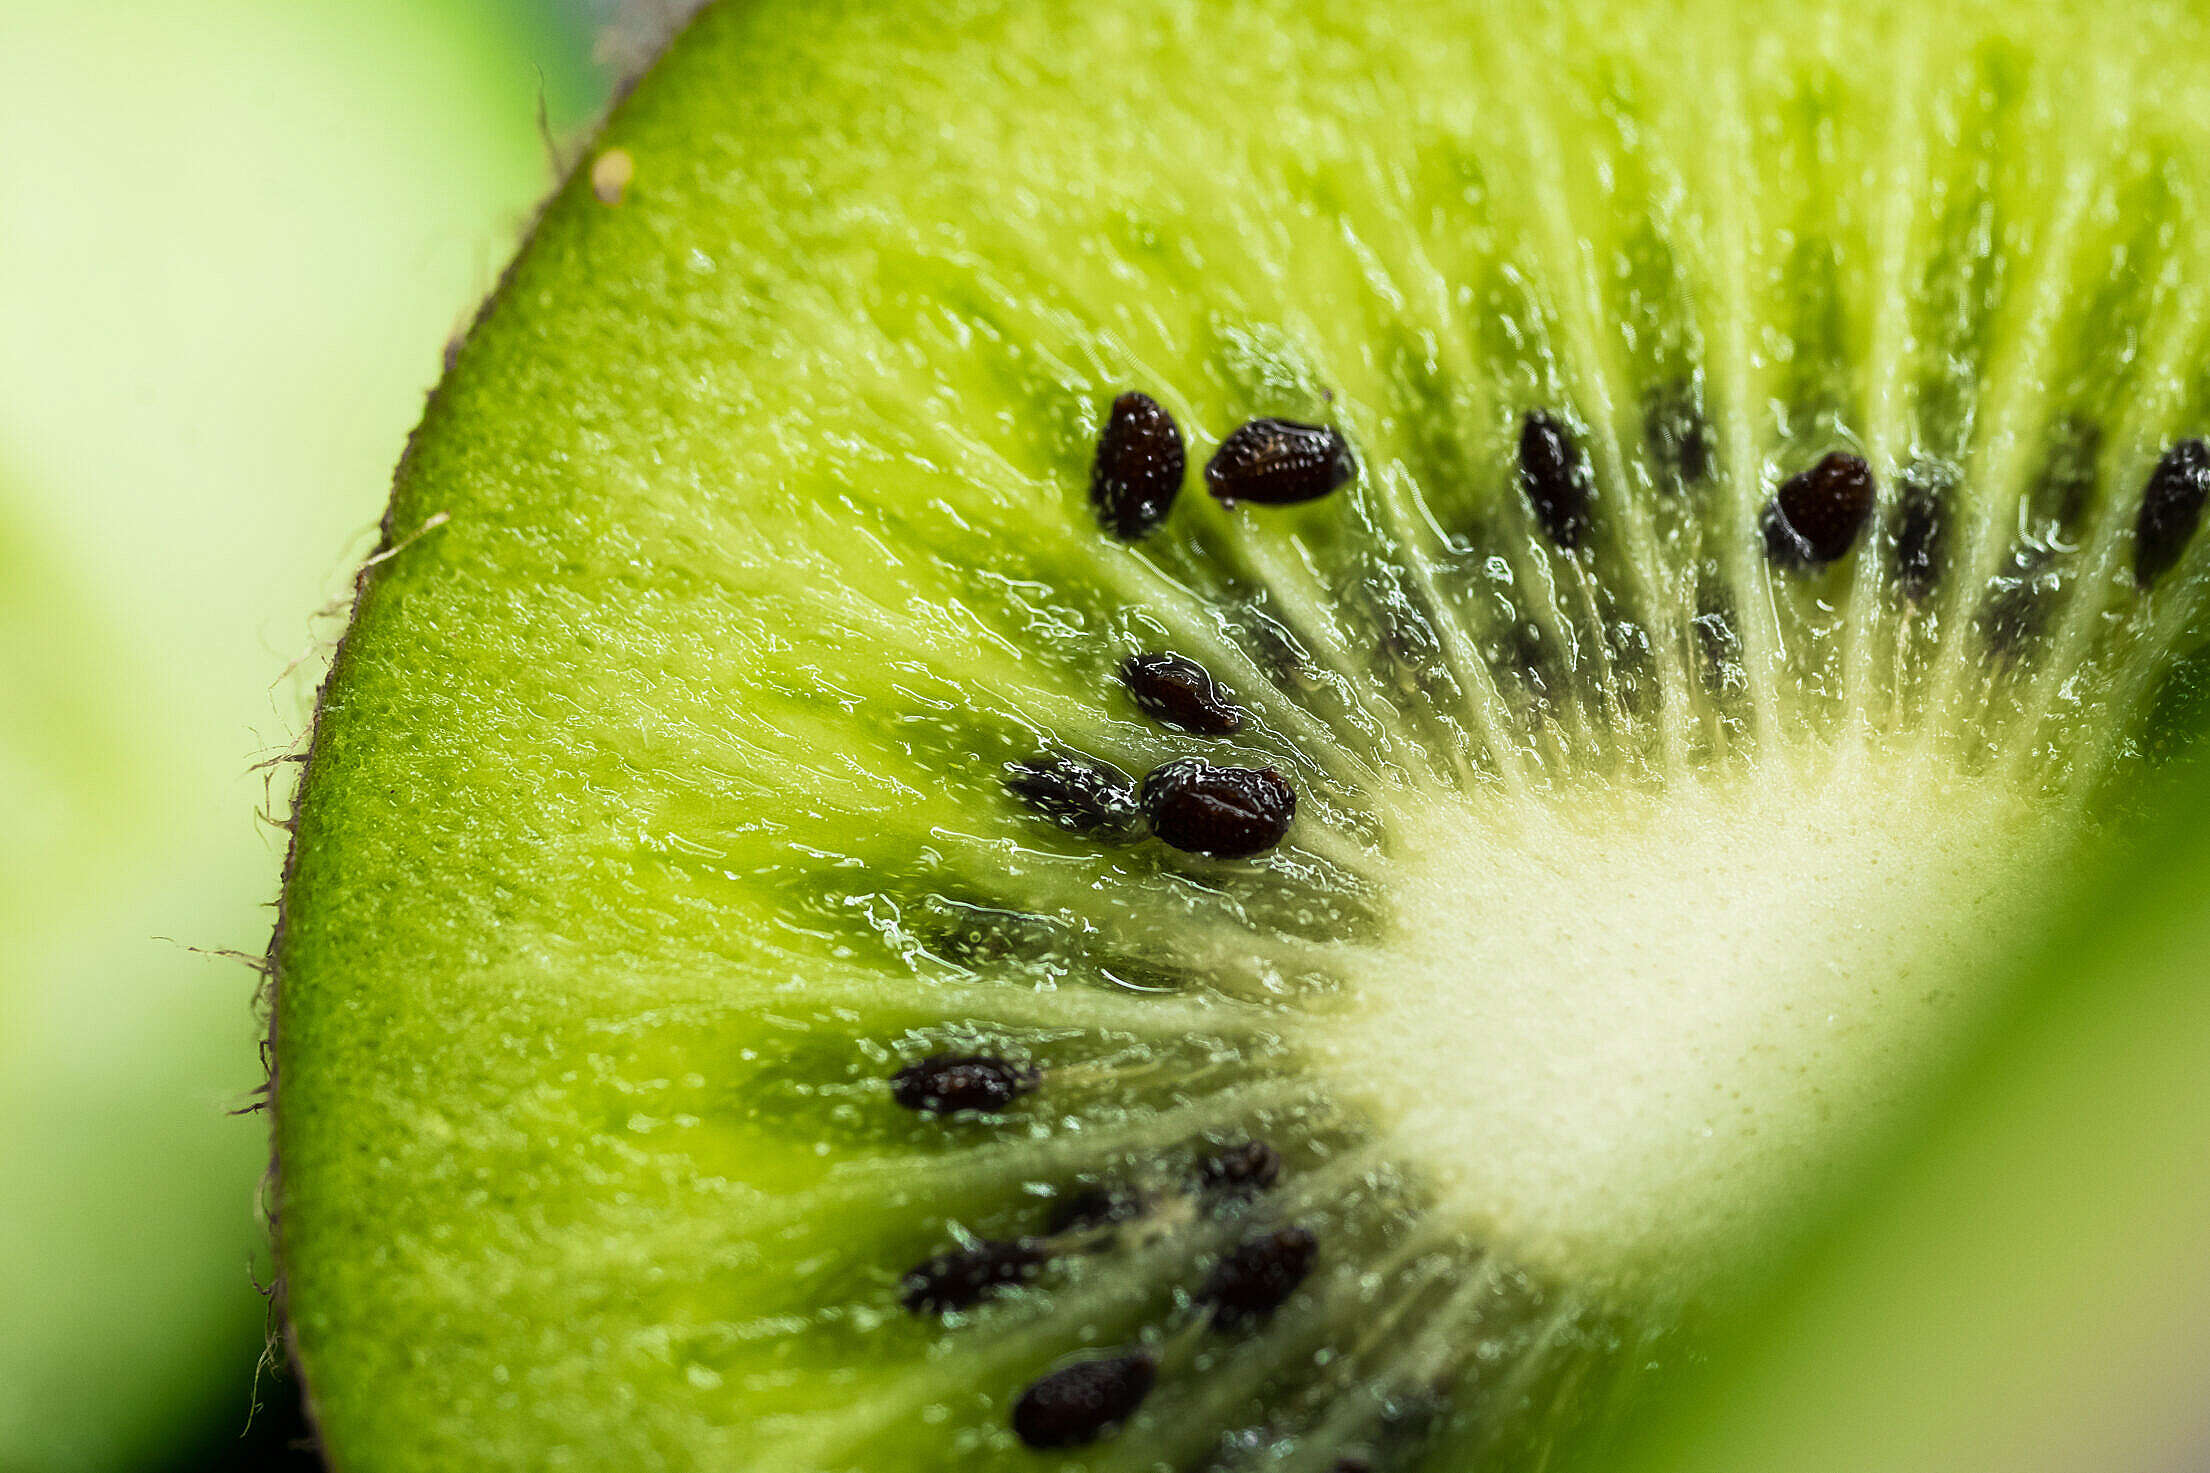 (click to download) Kiwi Macro FREE Stock Photo